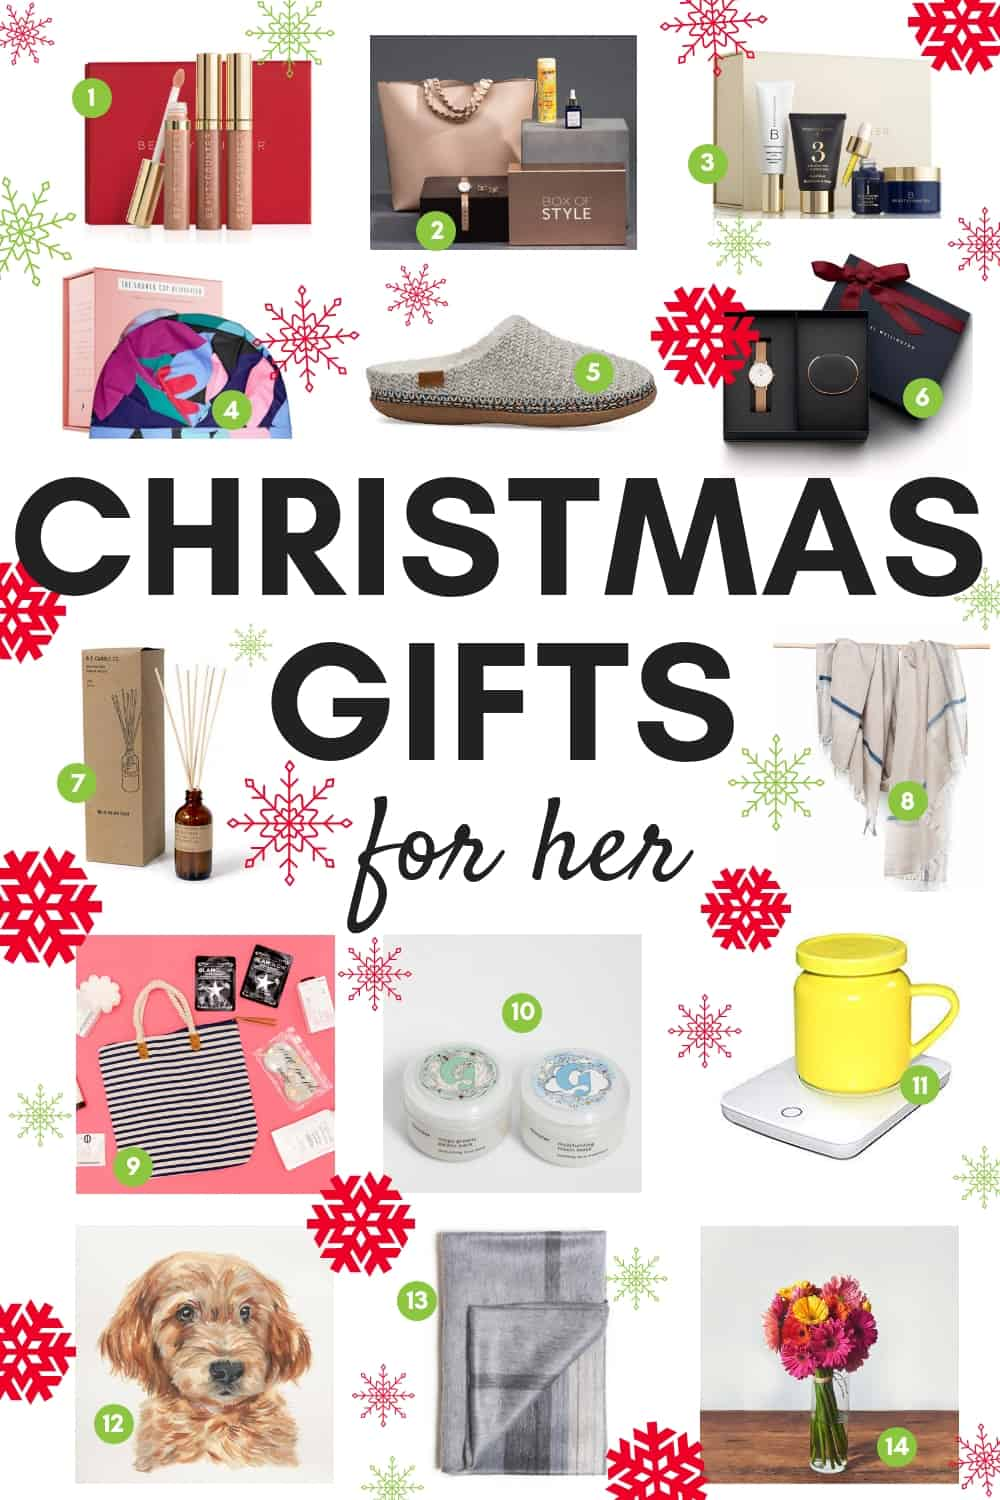 Running out of ideas for what to give the female in your life this holiday season? Here are some fun Christmas gift ideas that she'll enjoy for year round. This gift guide isn't just random ideas from the internet; they've all been personally tested and well-received! #Christmasgifts #holidaygifts